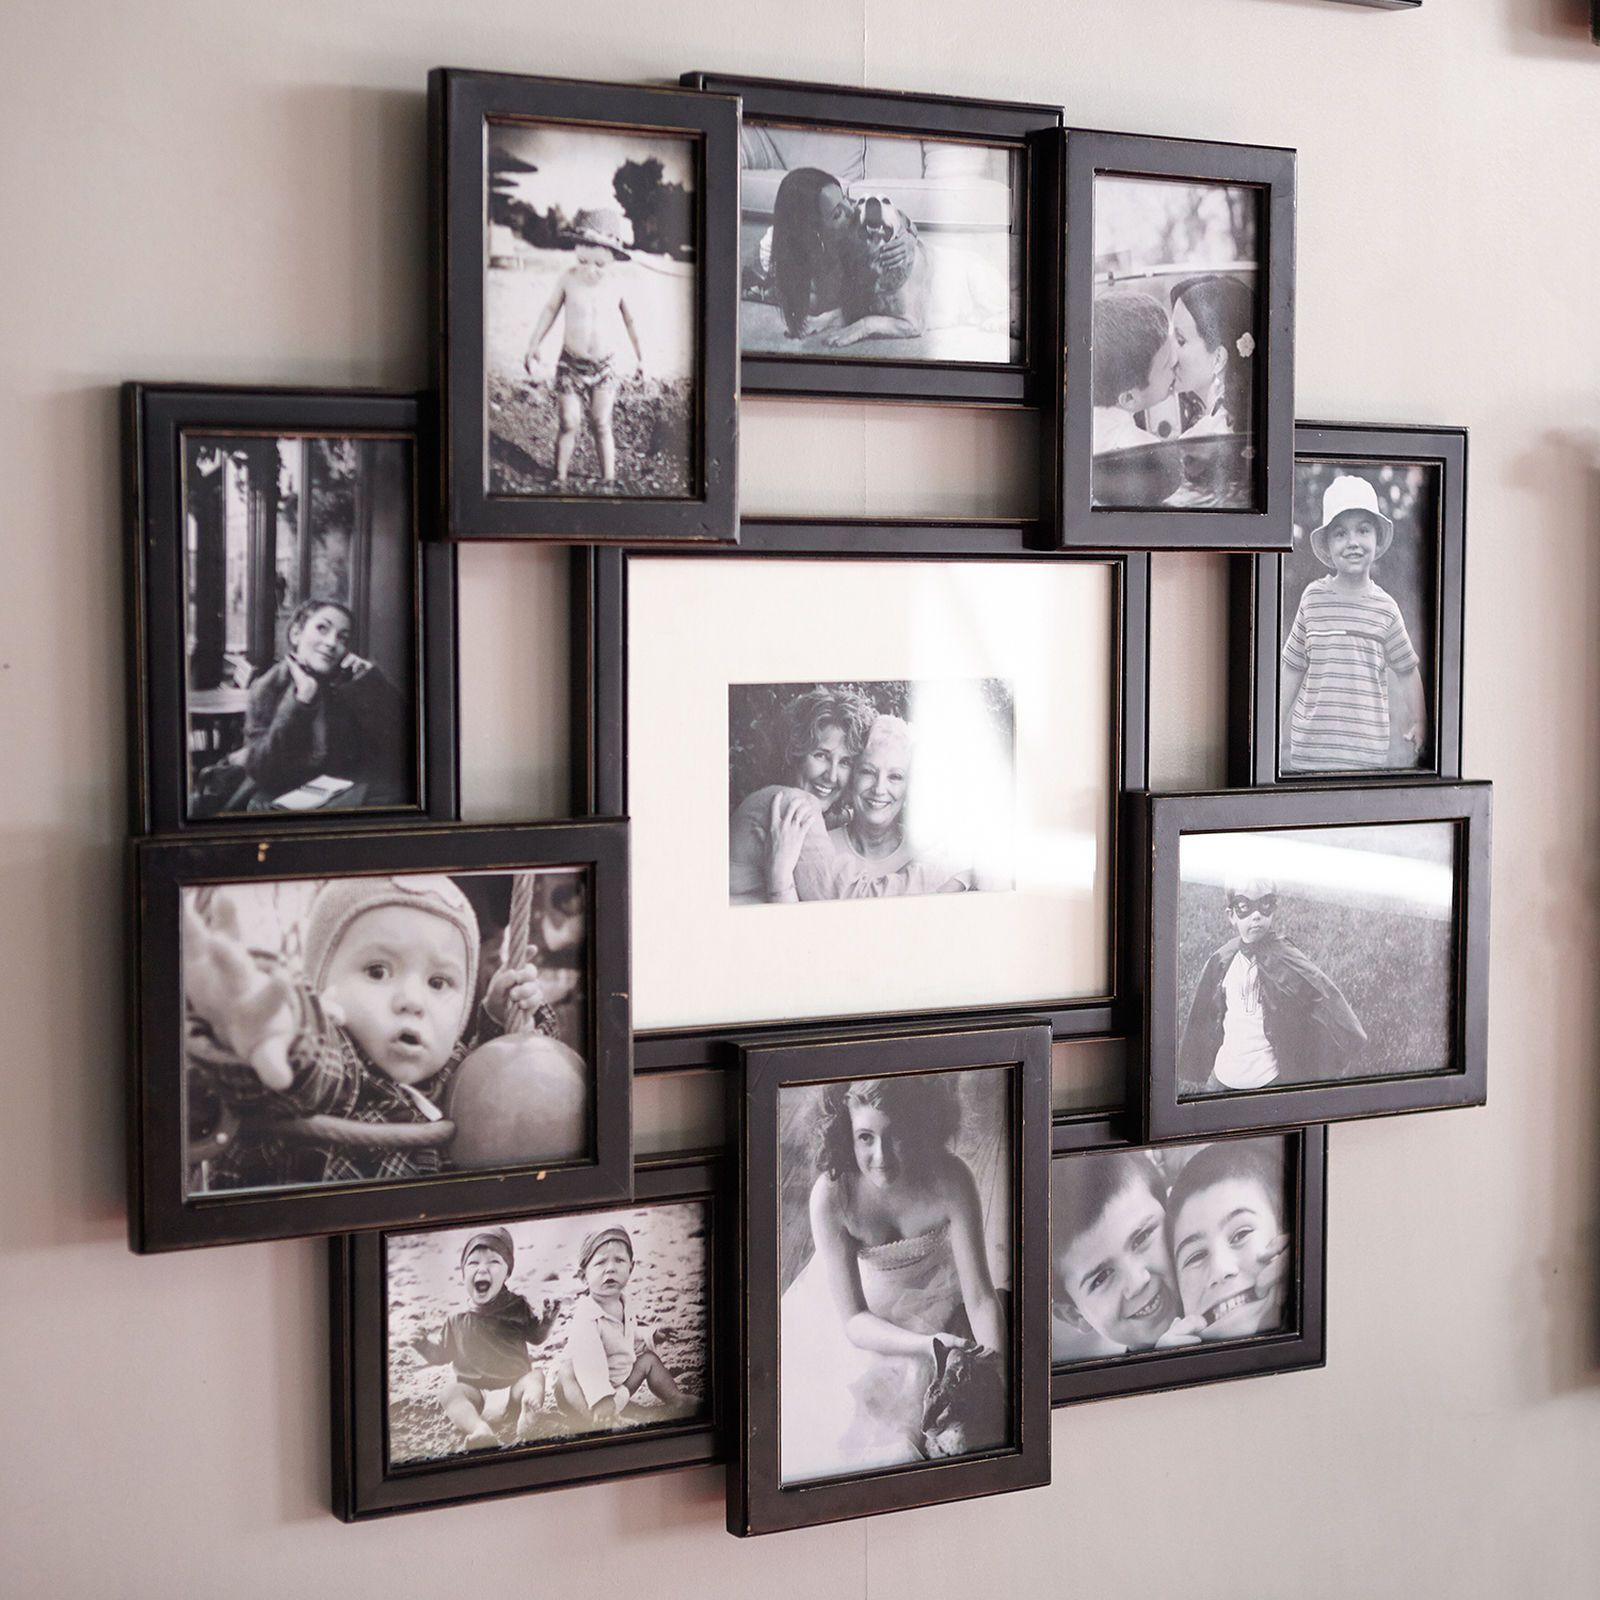 With This Awesome Collage Frame You Won 39 T Have To Choose One Picture You Want To Displ Wall Collage Picture Frames Framed Photo Collage Wall Collage Decor